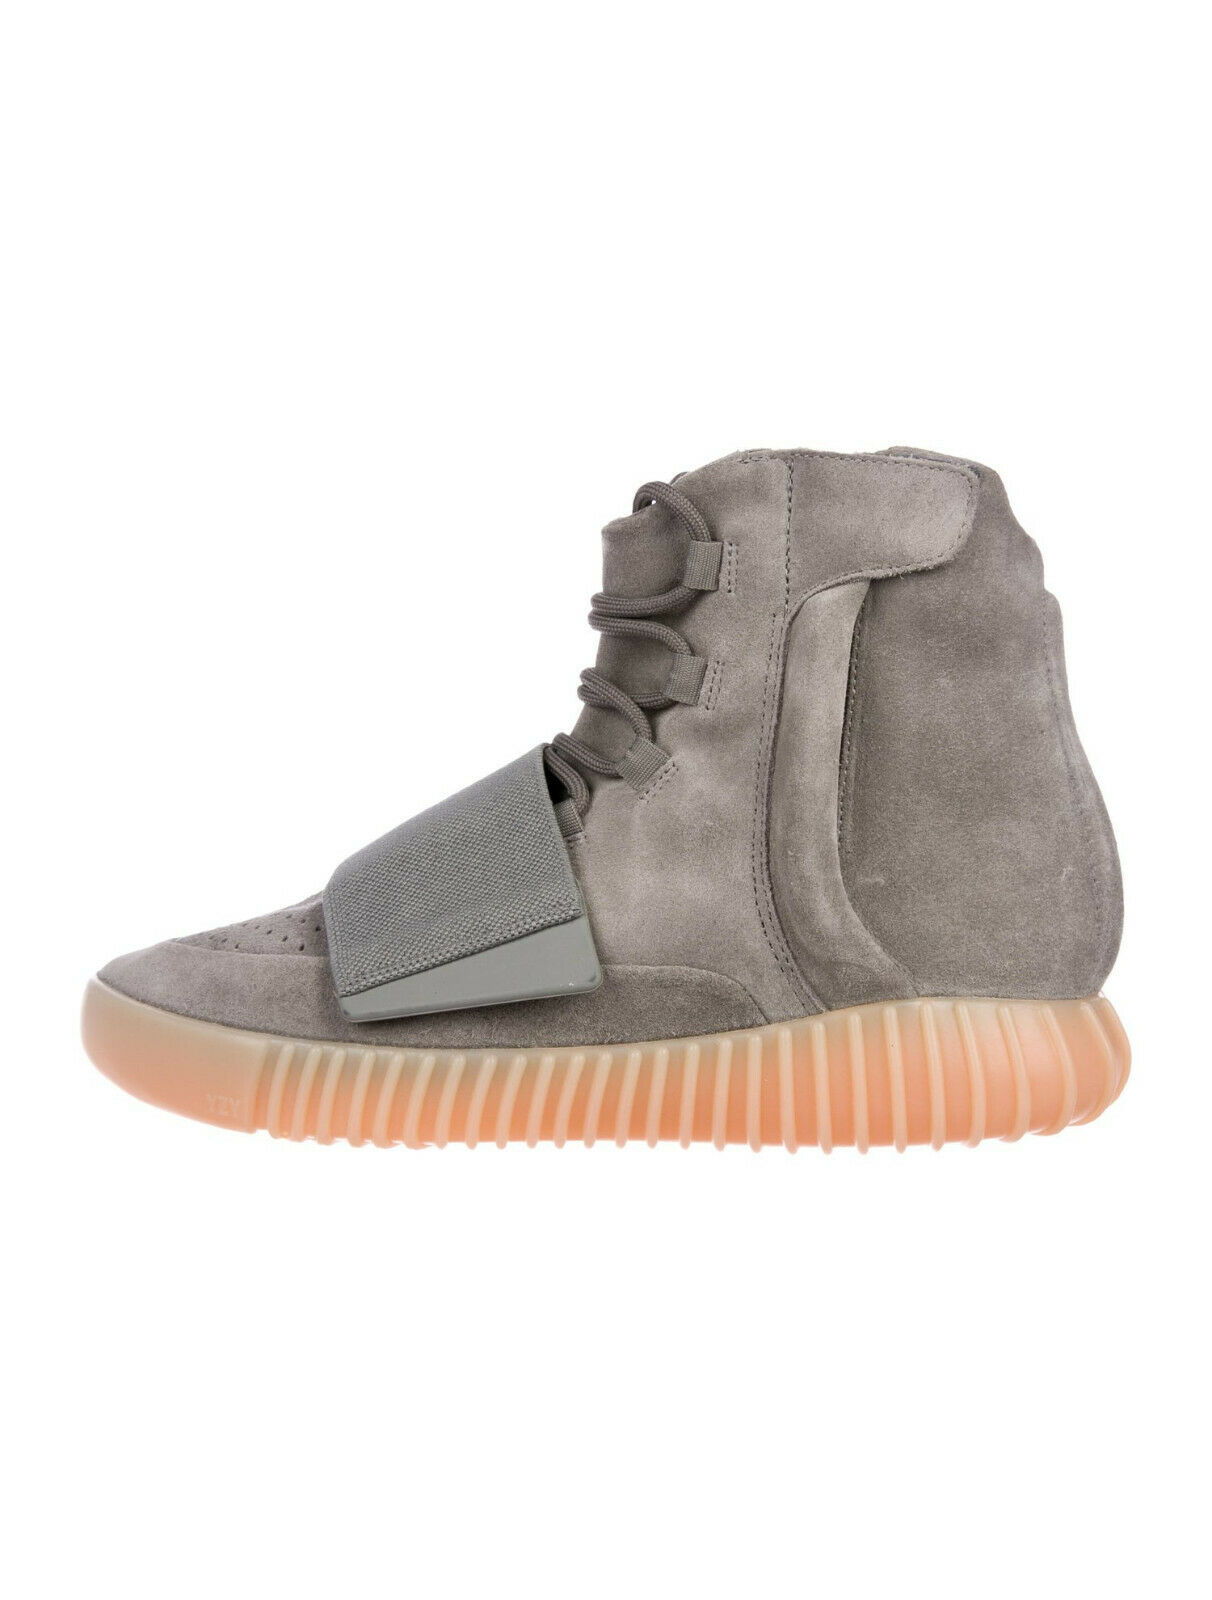 competitive price 53ed1 9b35c AUTHENTIC Adidas Yeezy Boost 750